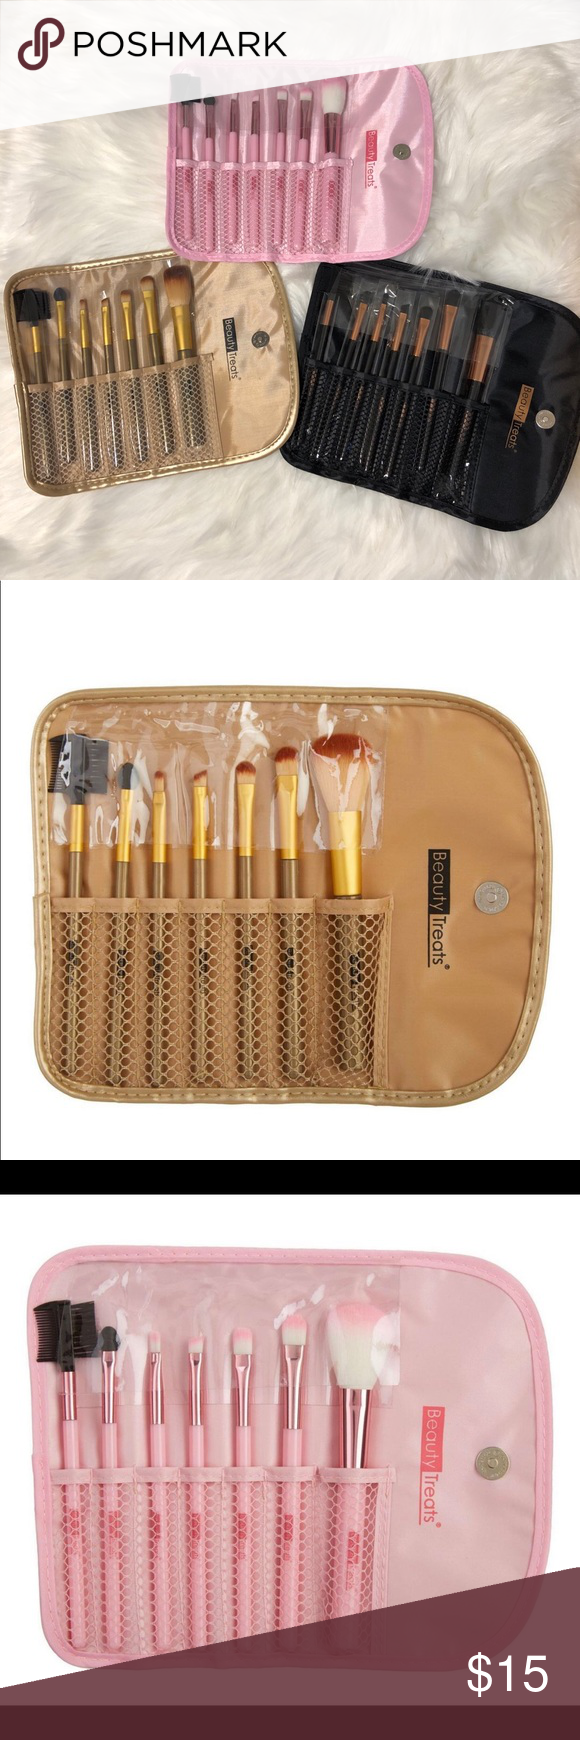 Beauty treats brushes sets 💕💖 3 differents colors brushes